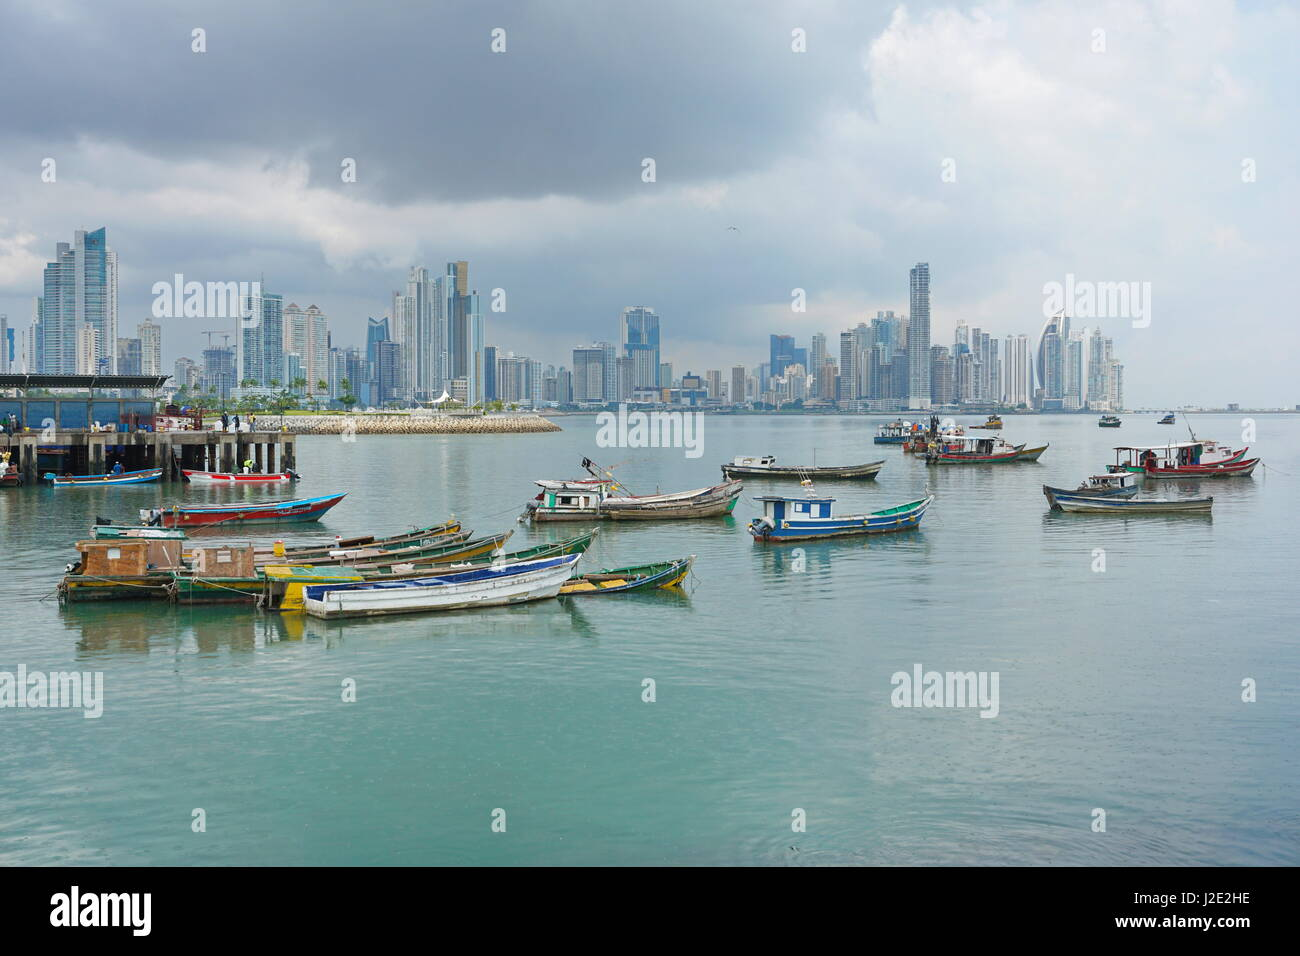 Panama city fishing boats anchored with skyscrapers buildings, Pacific coast, Central America - Stock Image